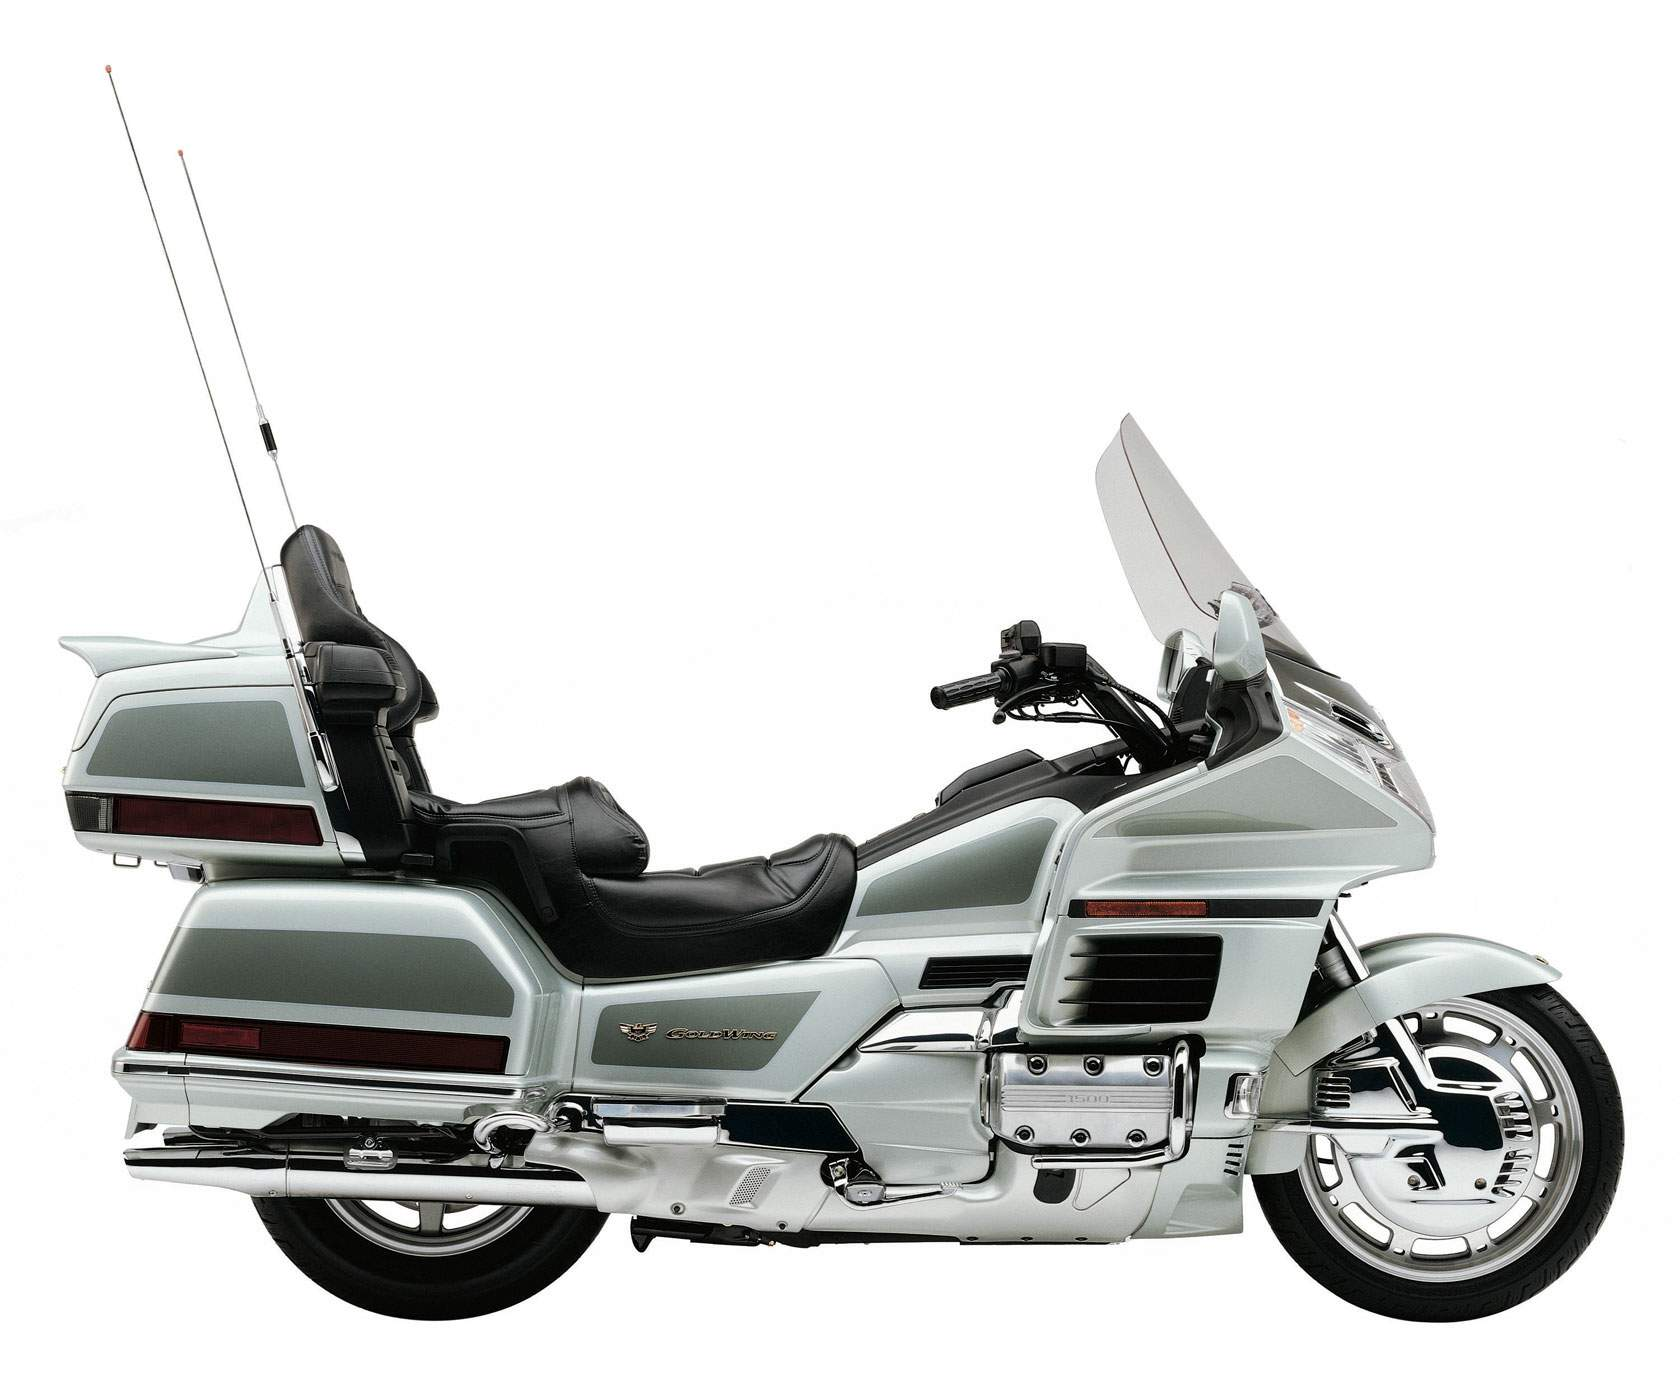 1998 Honda Goldwing Parts Diagram Electrical Wiring Diagrams Motorcycle Gl1500 Gl 1500 Se Gold Wing Pics Specs And Information